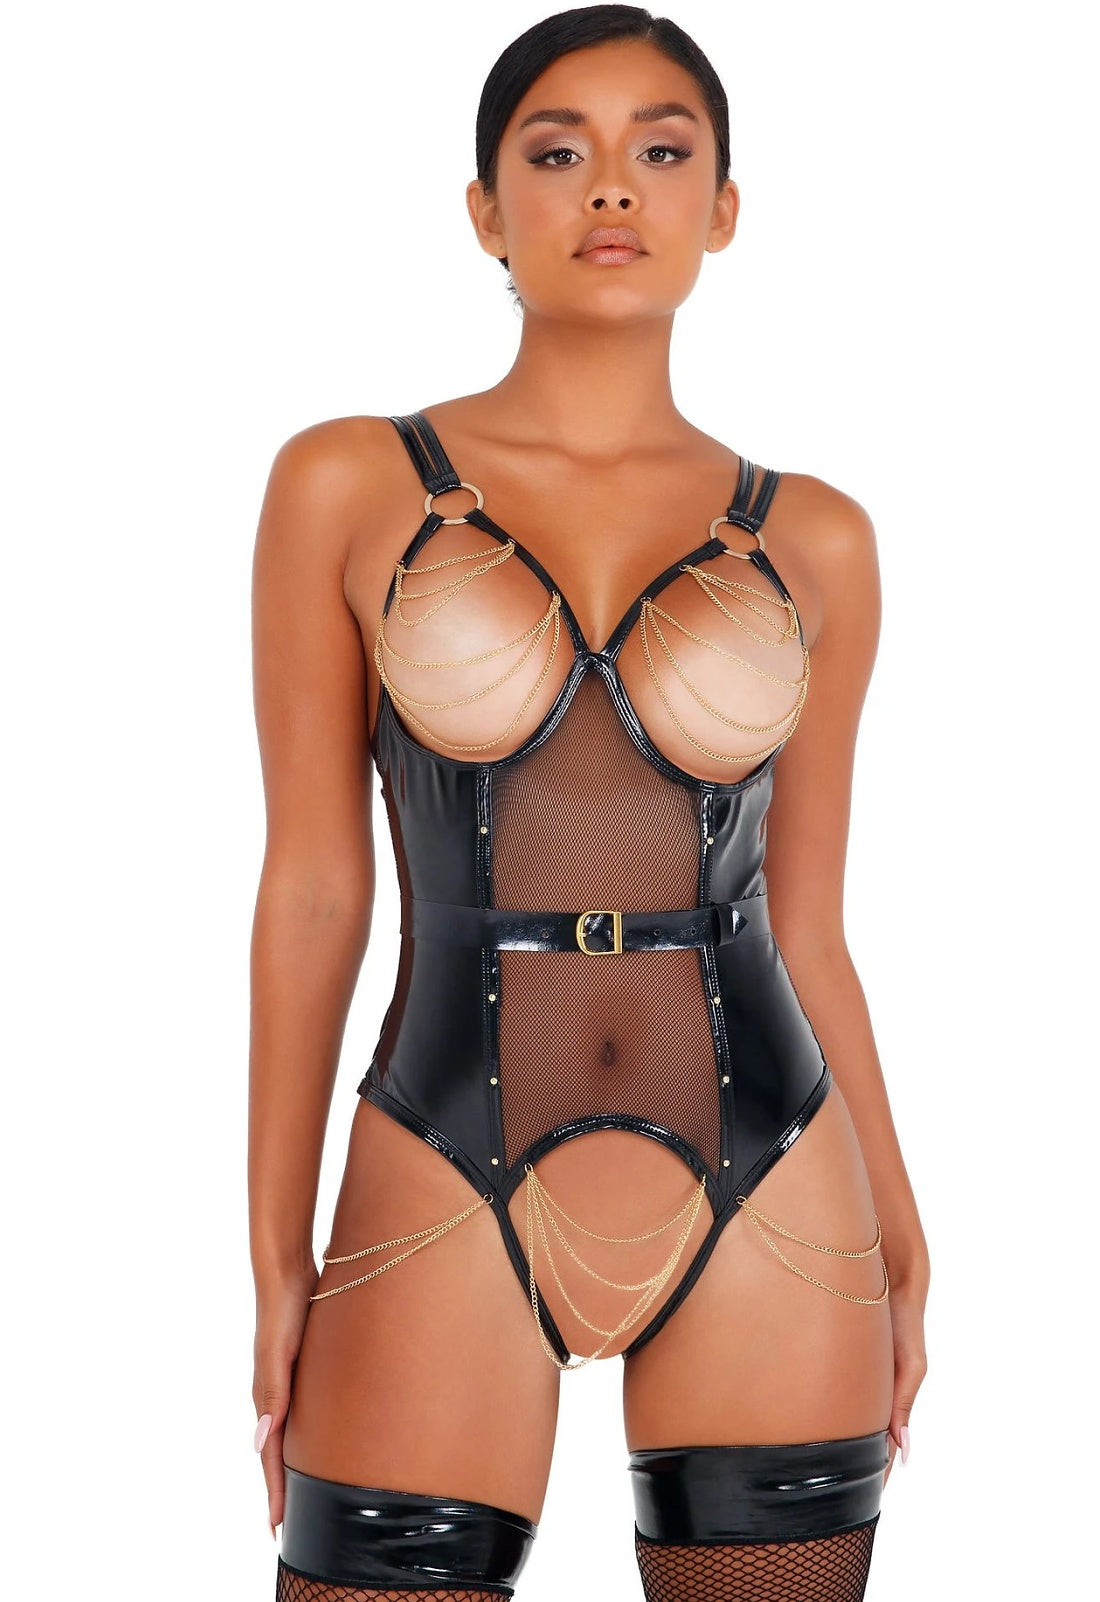 Latex domina bodysuit